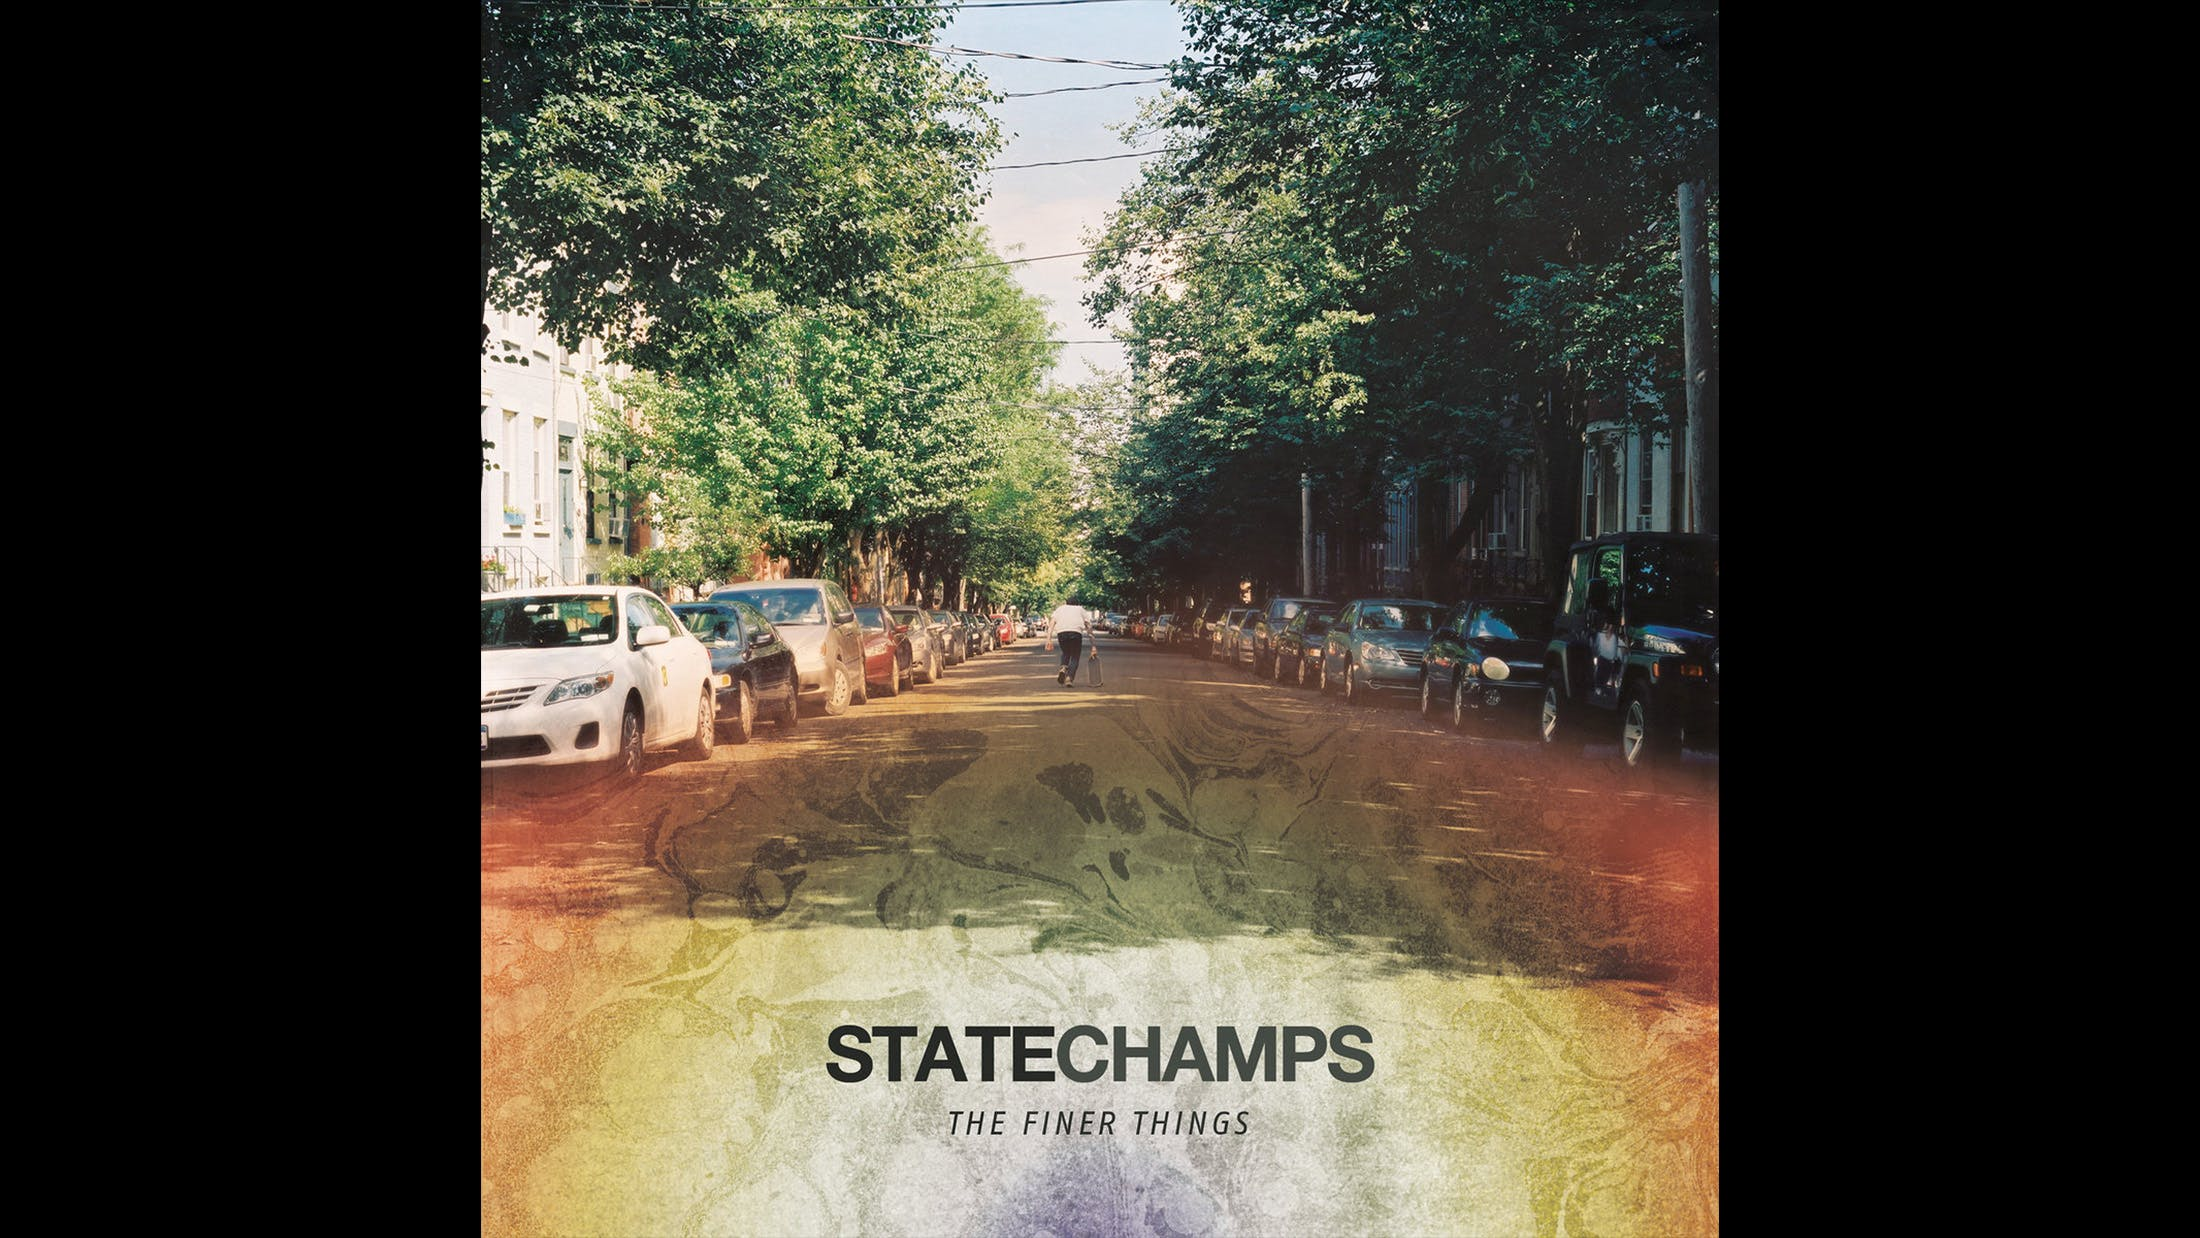 51. State Champs - The Finer Things (2013)